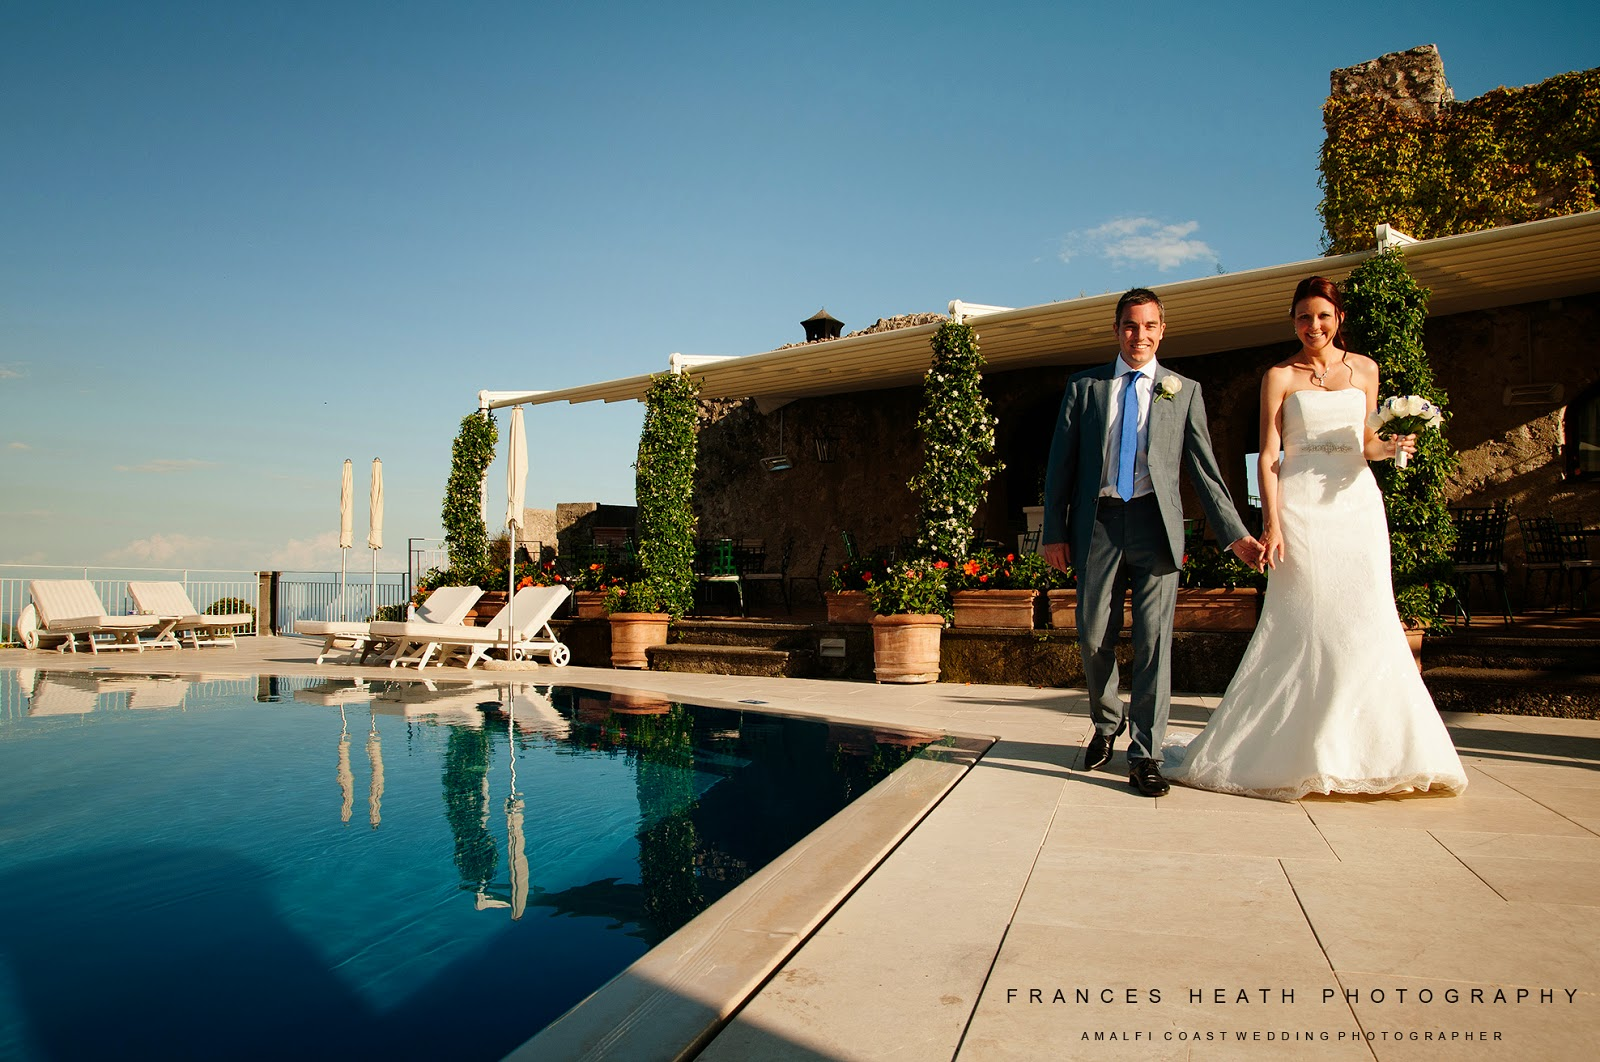 Wedding at Hotel Caruso in Ravello